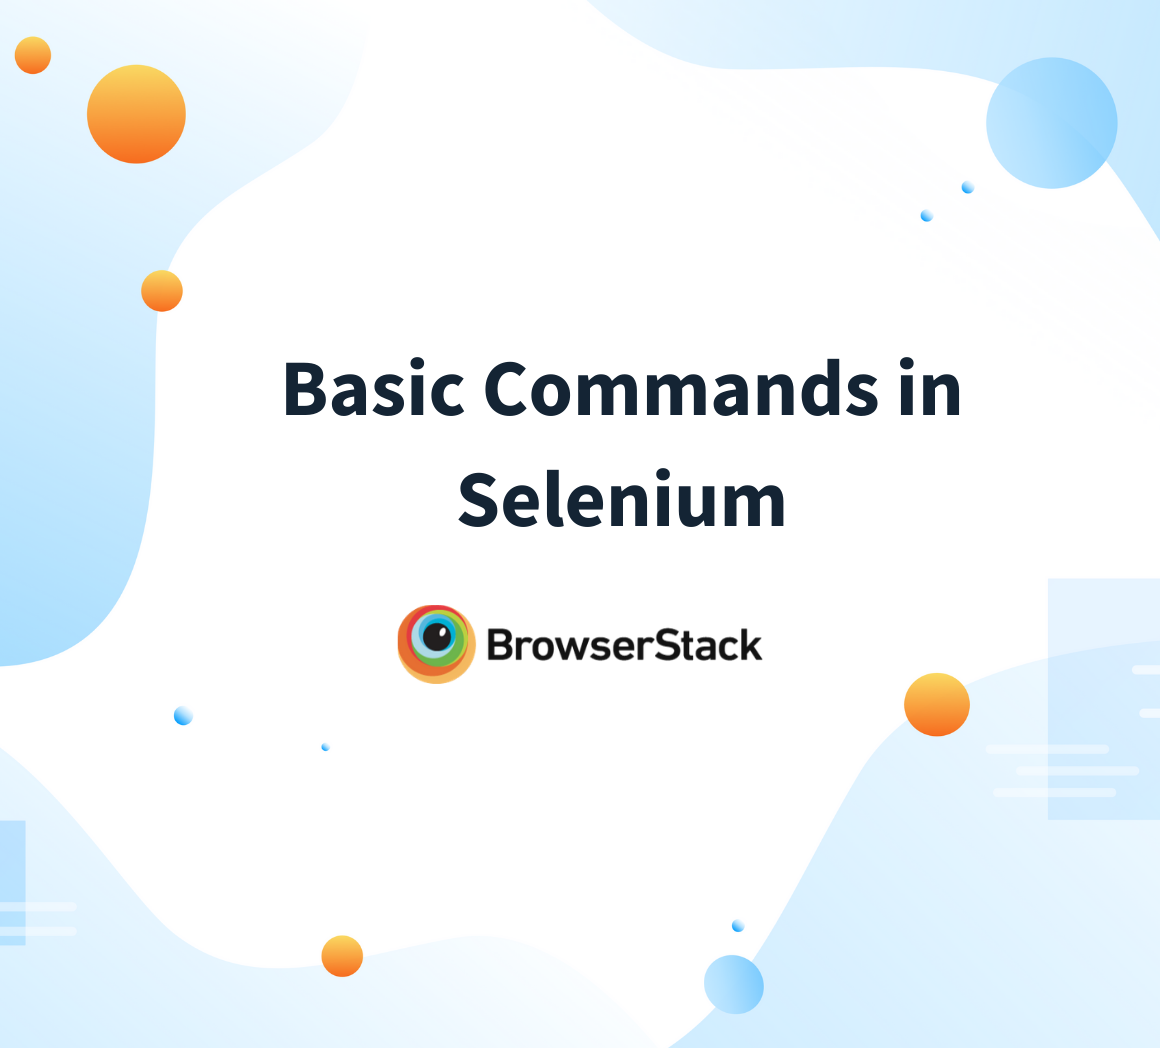 Basic Commands in Selenium